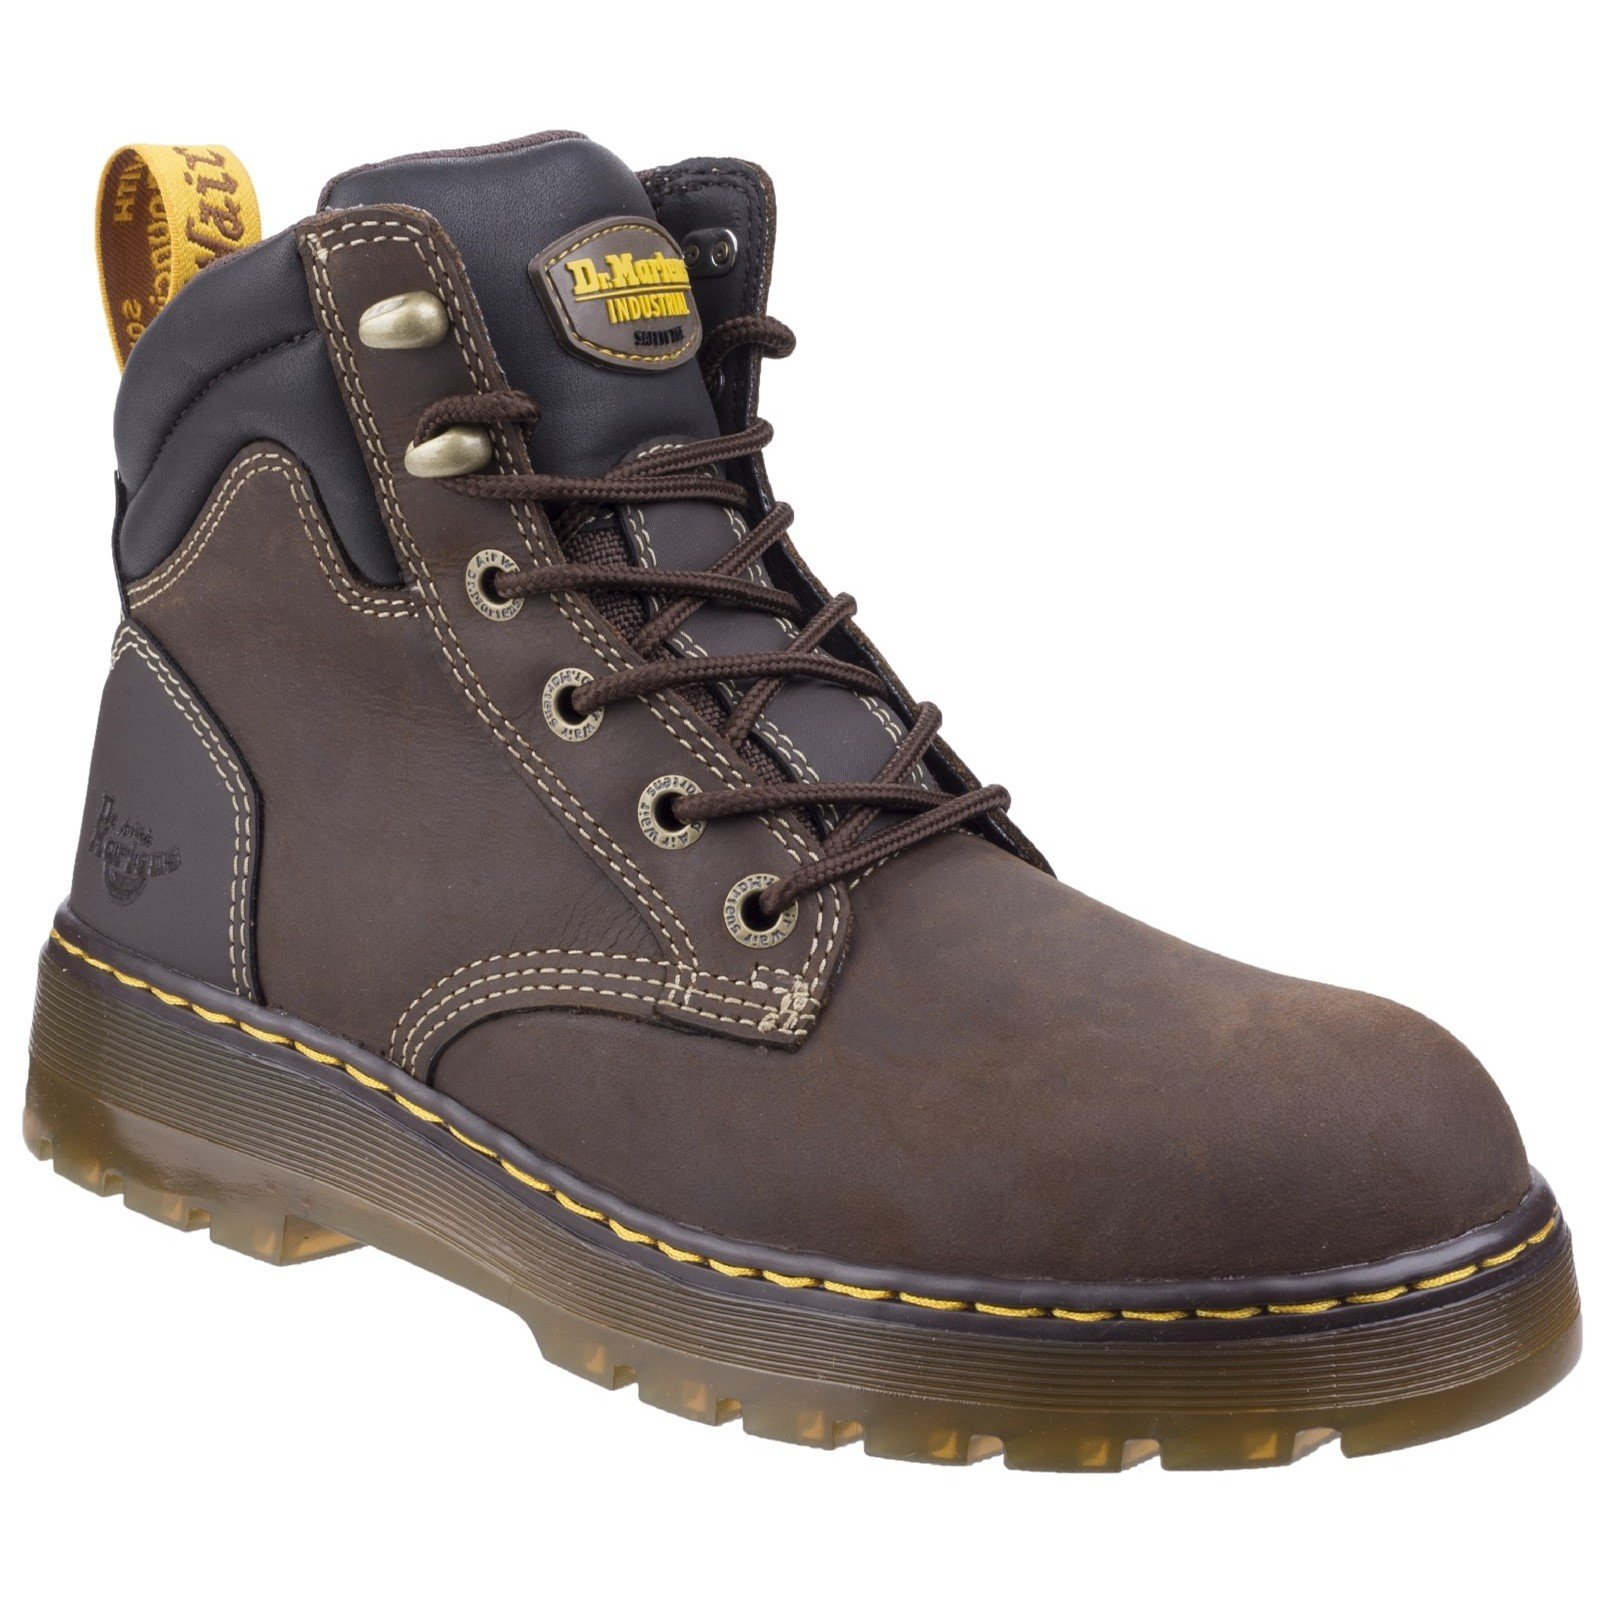 Dr Martens Unisex Brace Hiking Style Safety Boot Various Colours 27702-46606 - Dark Brown Republic 6